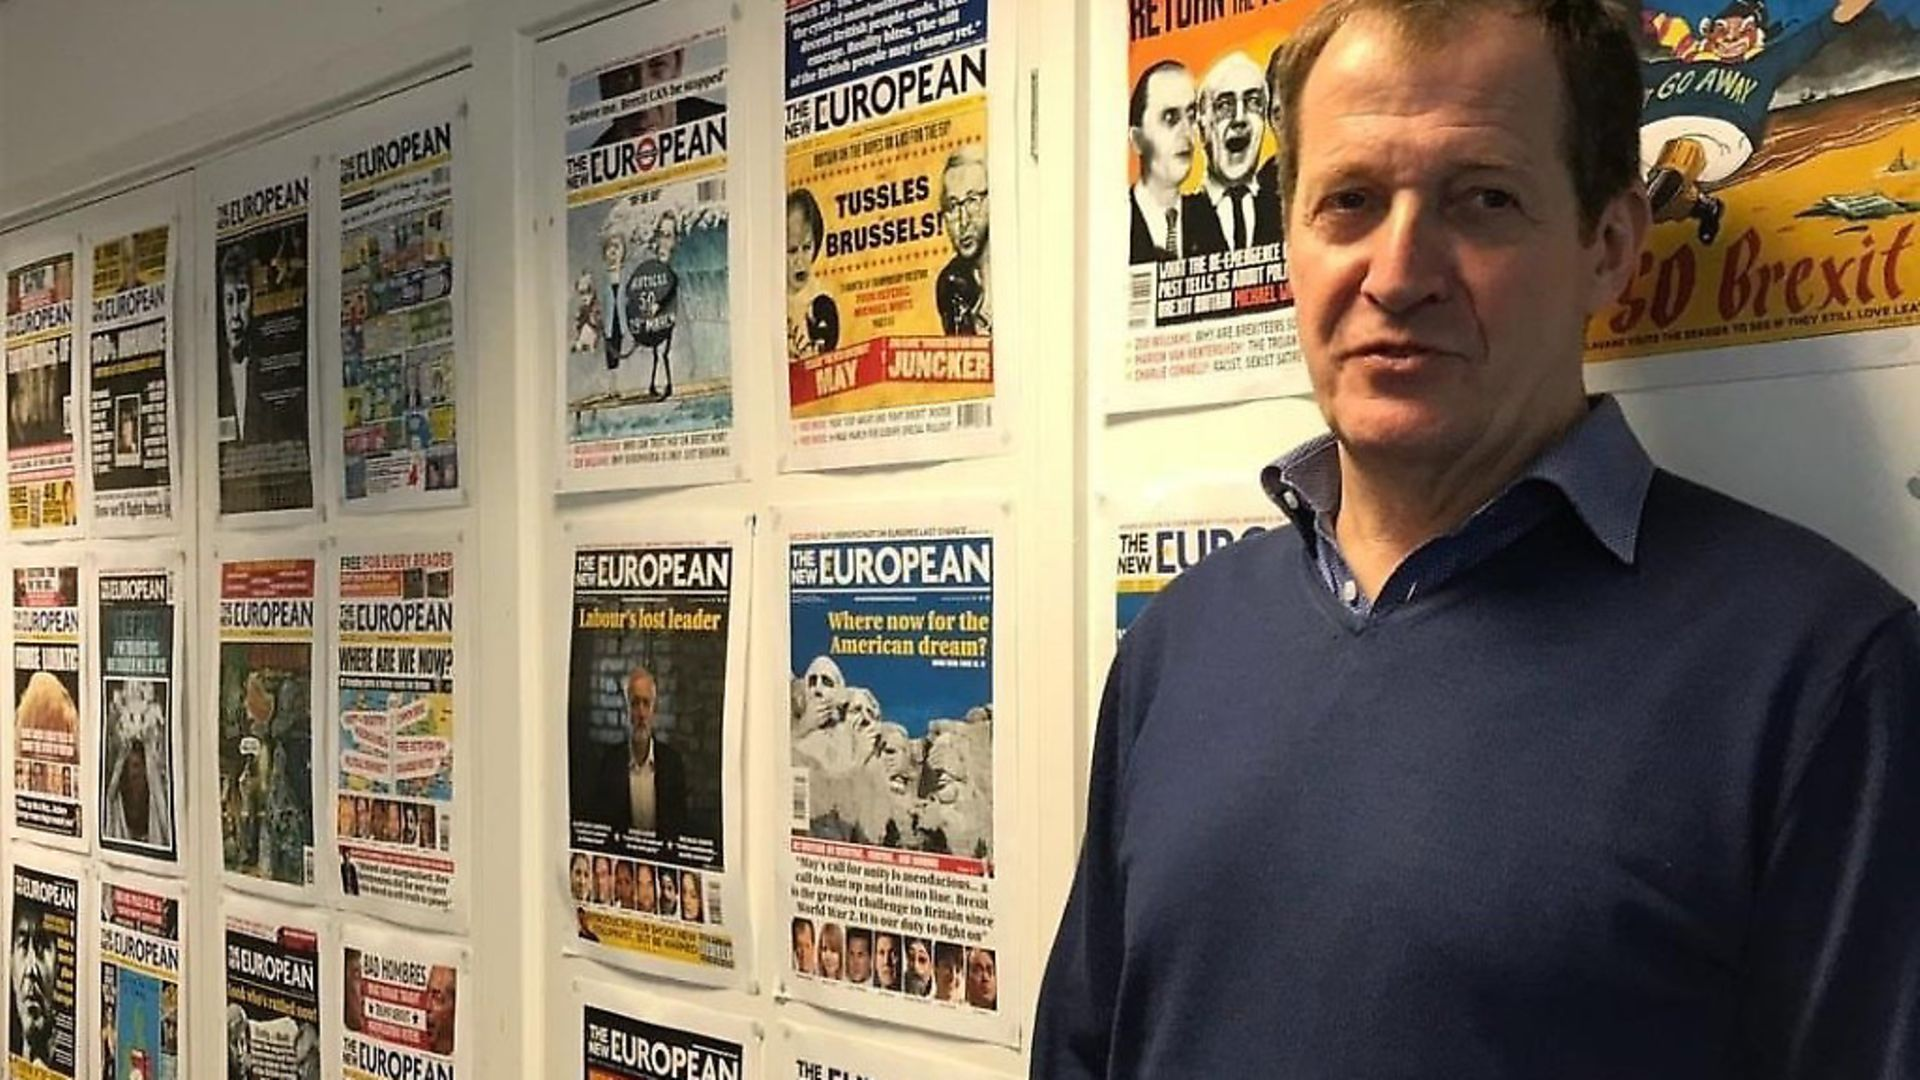 Alastair Campbell. Photograph: Alastair Campbell/Twitter. - Credit: Archant